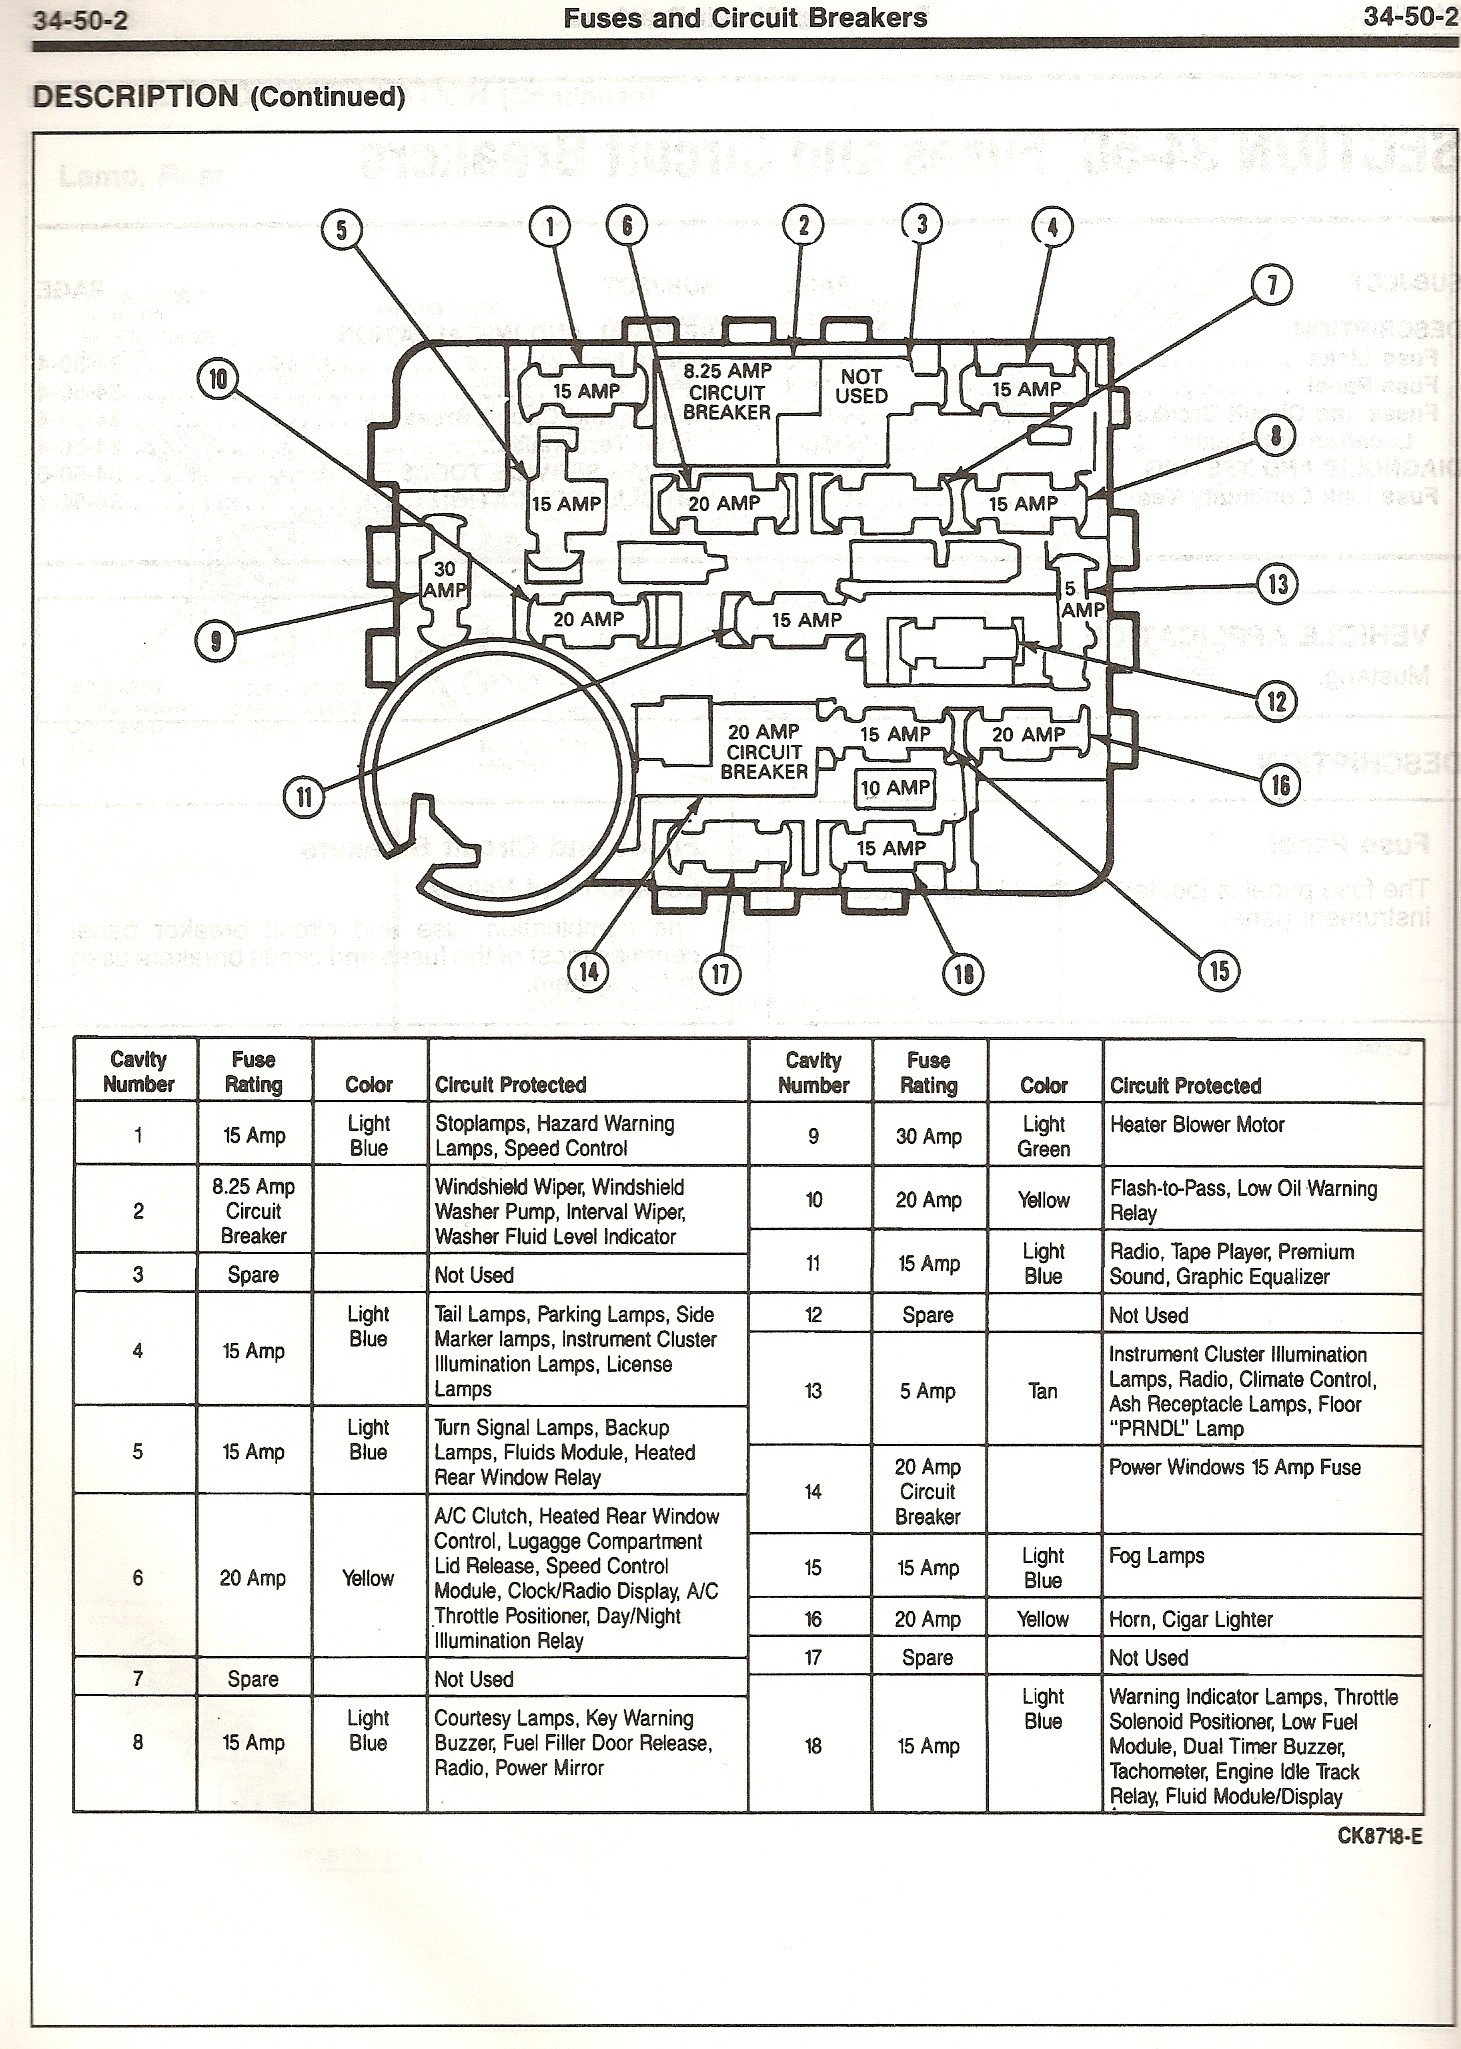 ford fuse box diagram 1995 aerostar